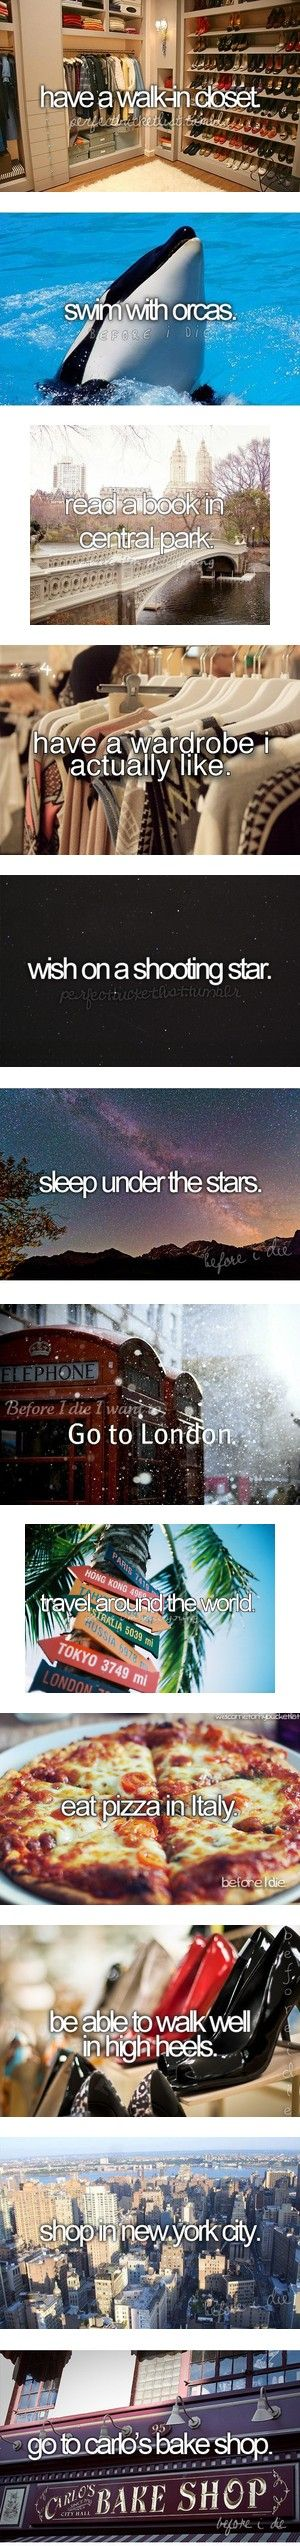 Things to Do Before I Die: I've done three - eaten pizza in Italy, worn high heel shoes, and wished on a shooting star.